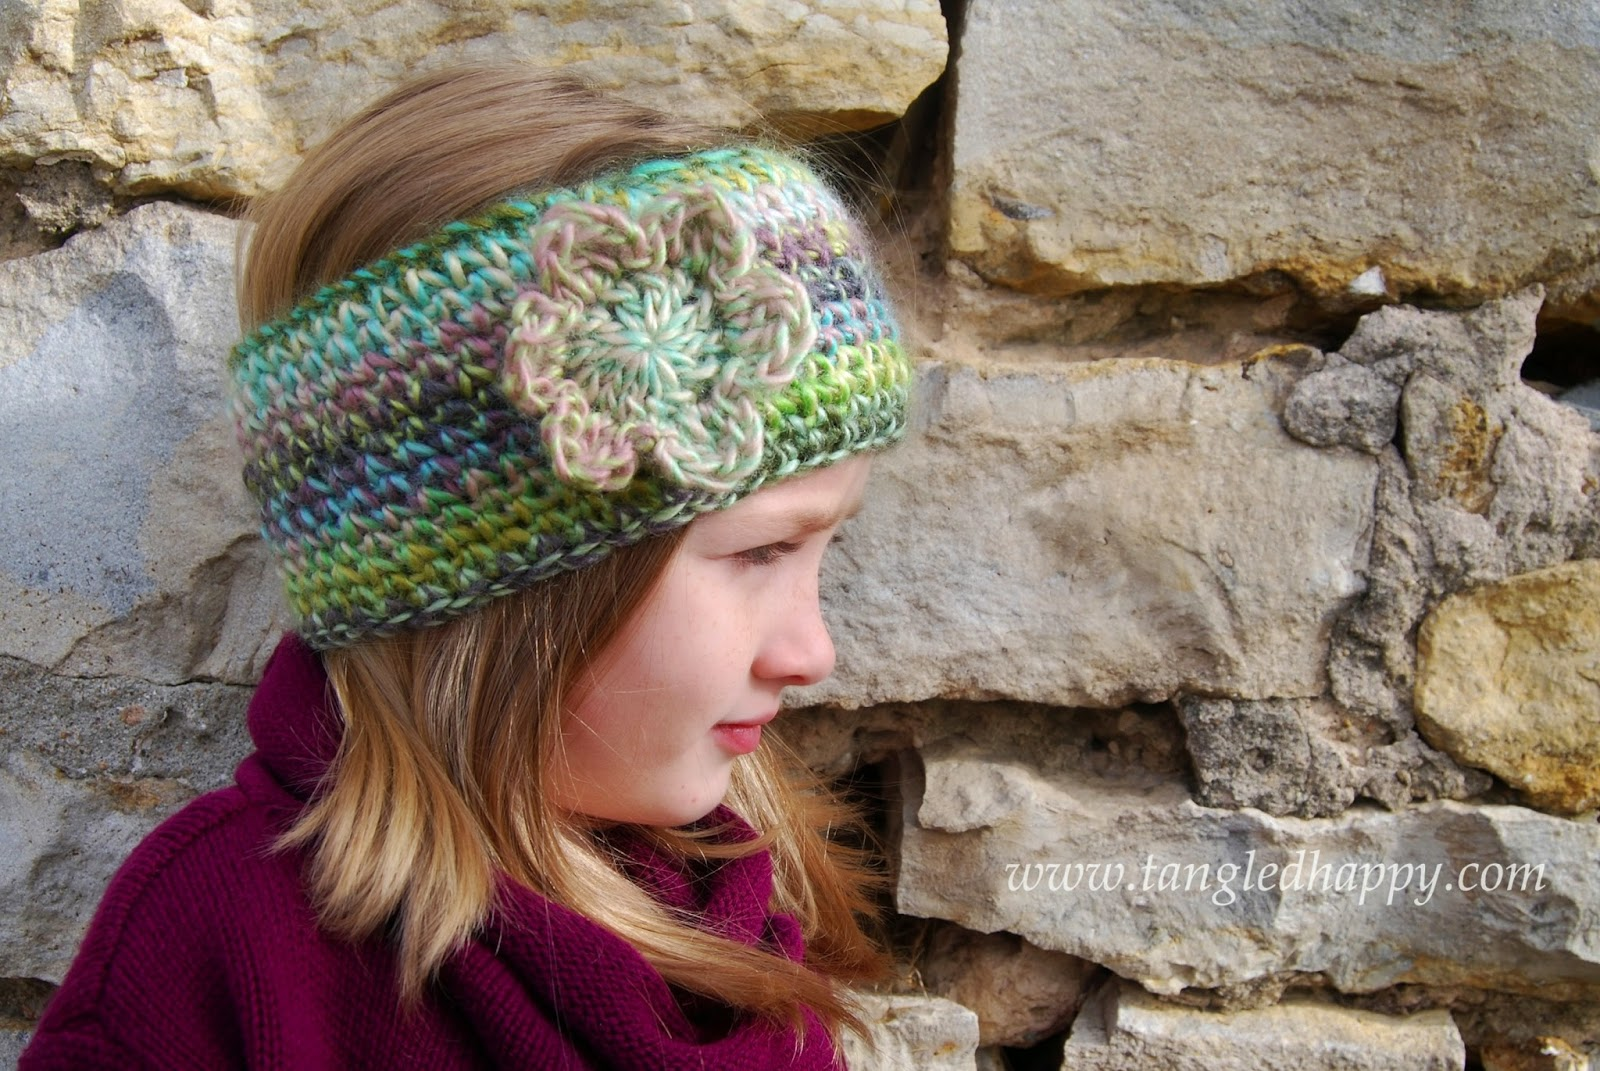 Knitting Patterns For Ear Warmers With Flower : tangled happy: Faux Knit Ear Warmer {Free Crochet Pattern}